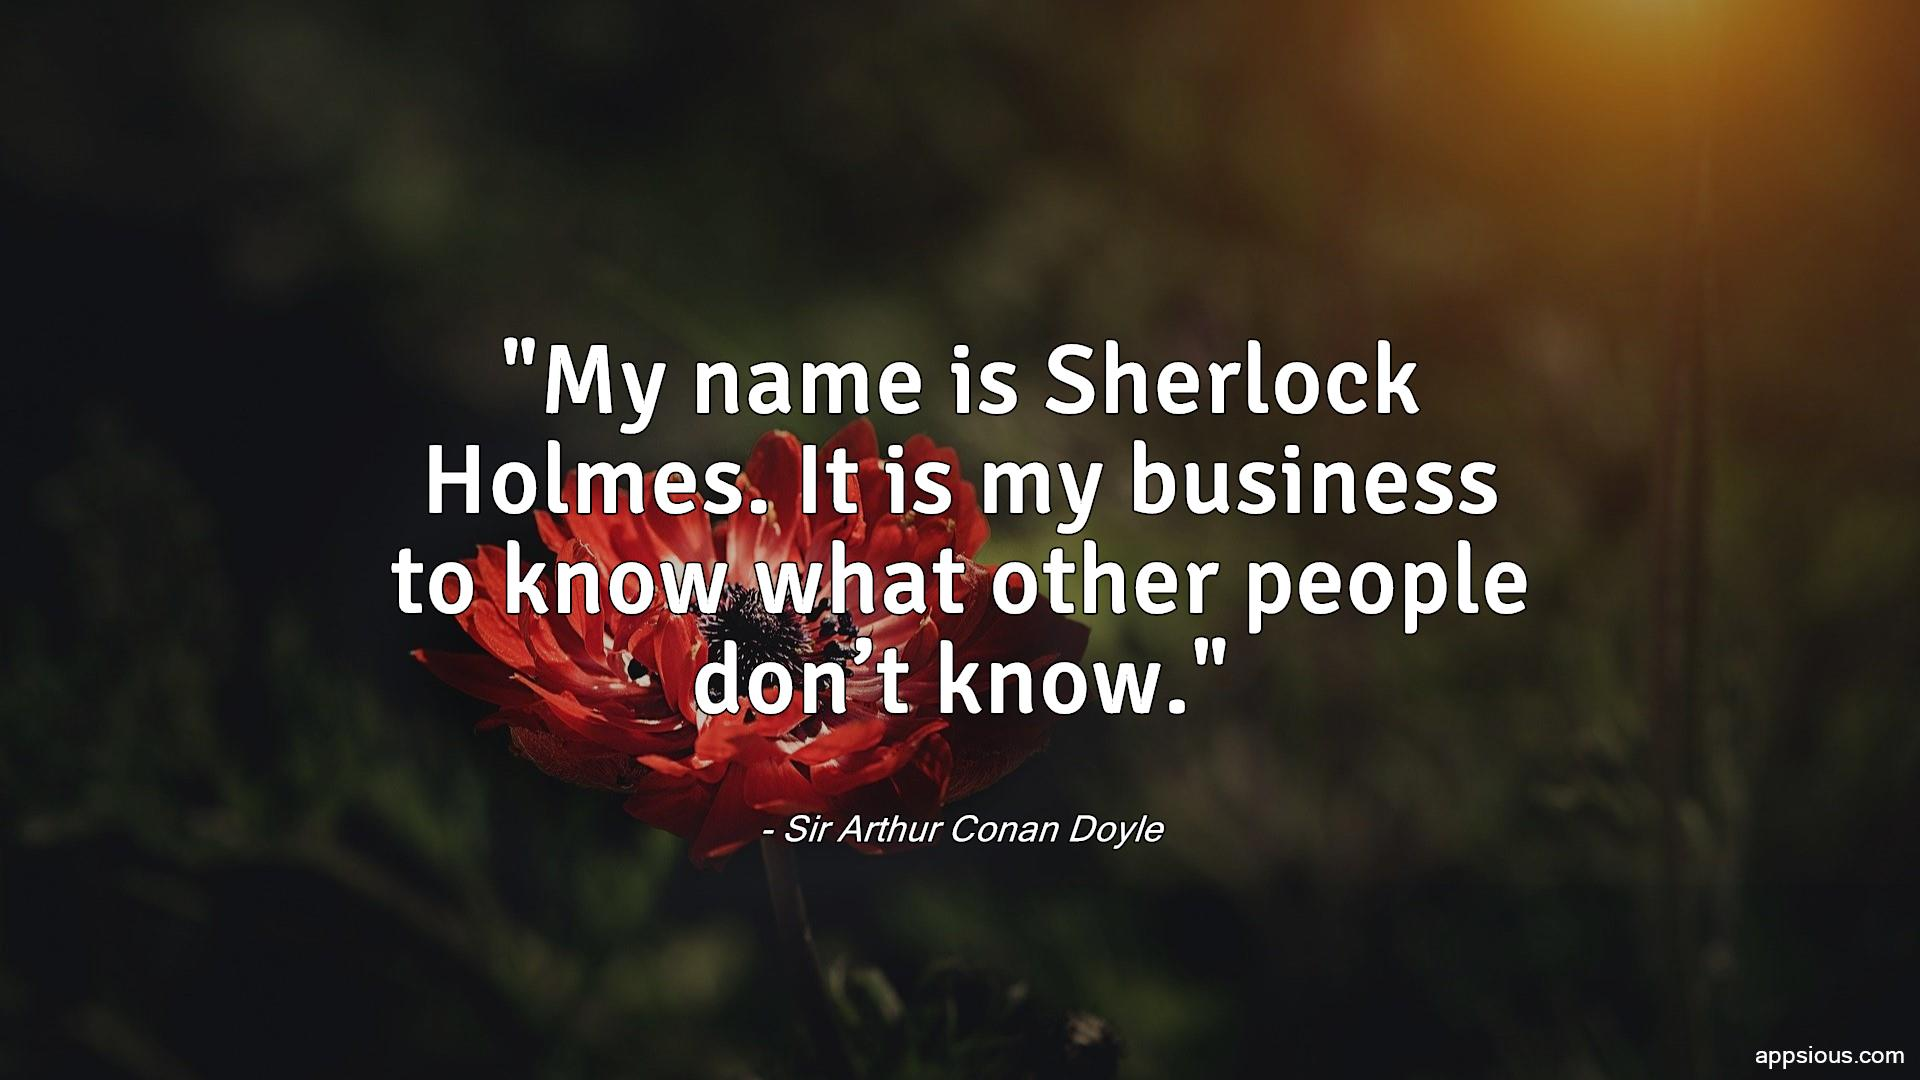 My name is Sherlock Holmes. It is my business to know what other people don't know.